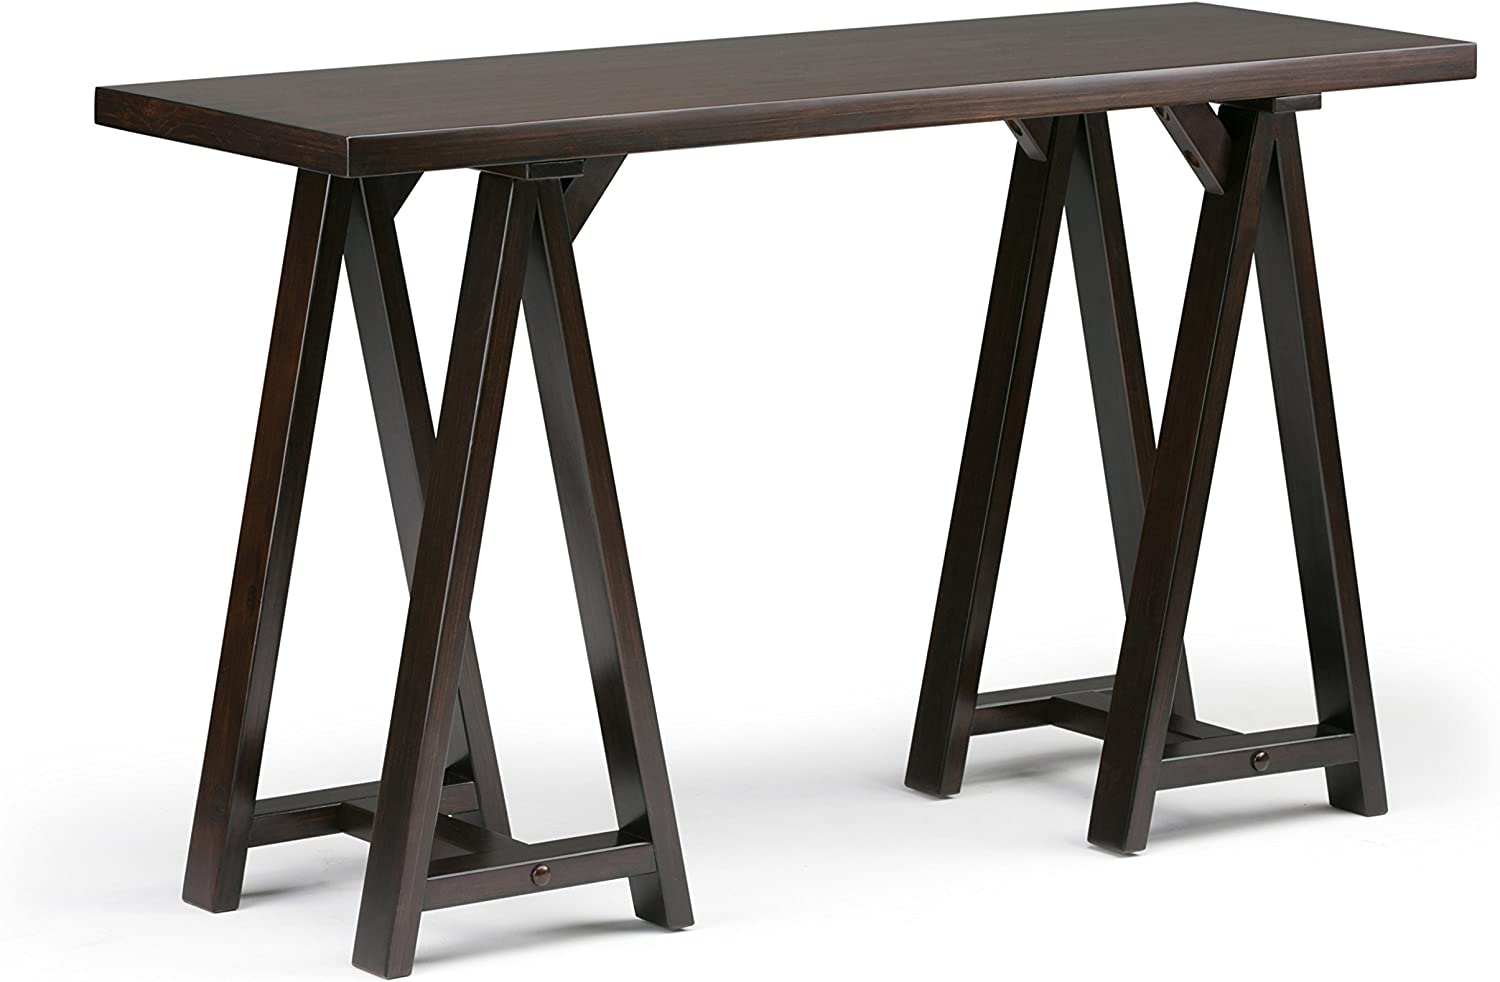 SIMPLIHOME Sawhorse SOLID WOOD 50 inch Wide Modern Industrial Console Sofa Entryway Table in Dark Chestnut Brown, for the Living Room, Entryway and Bedroom